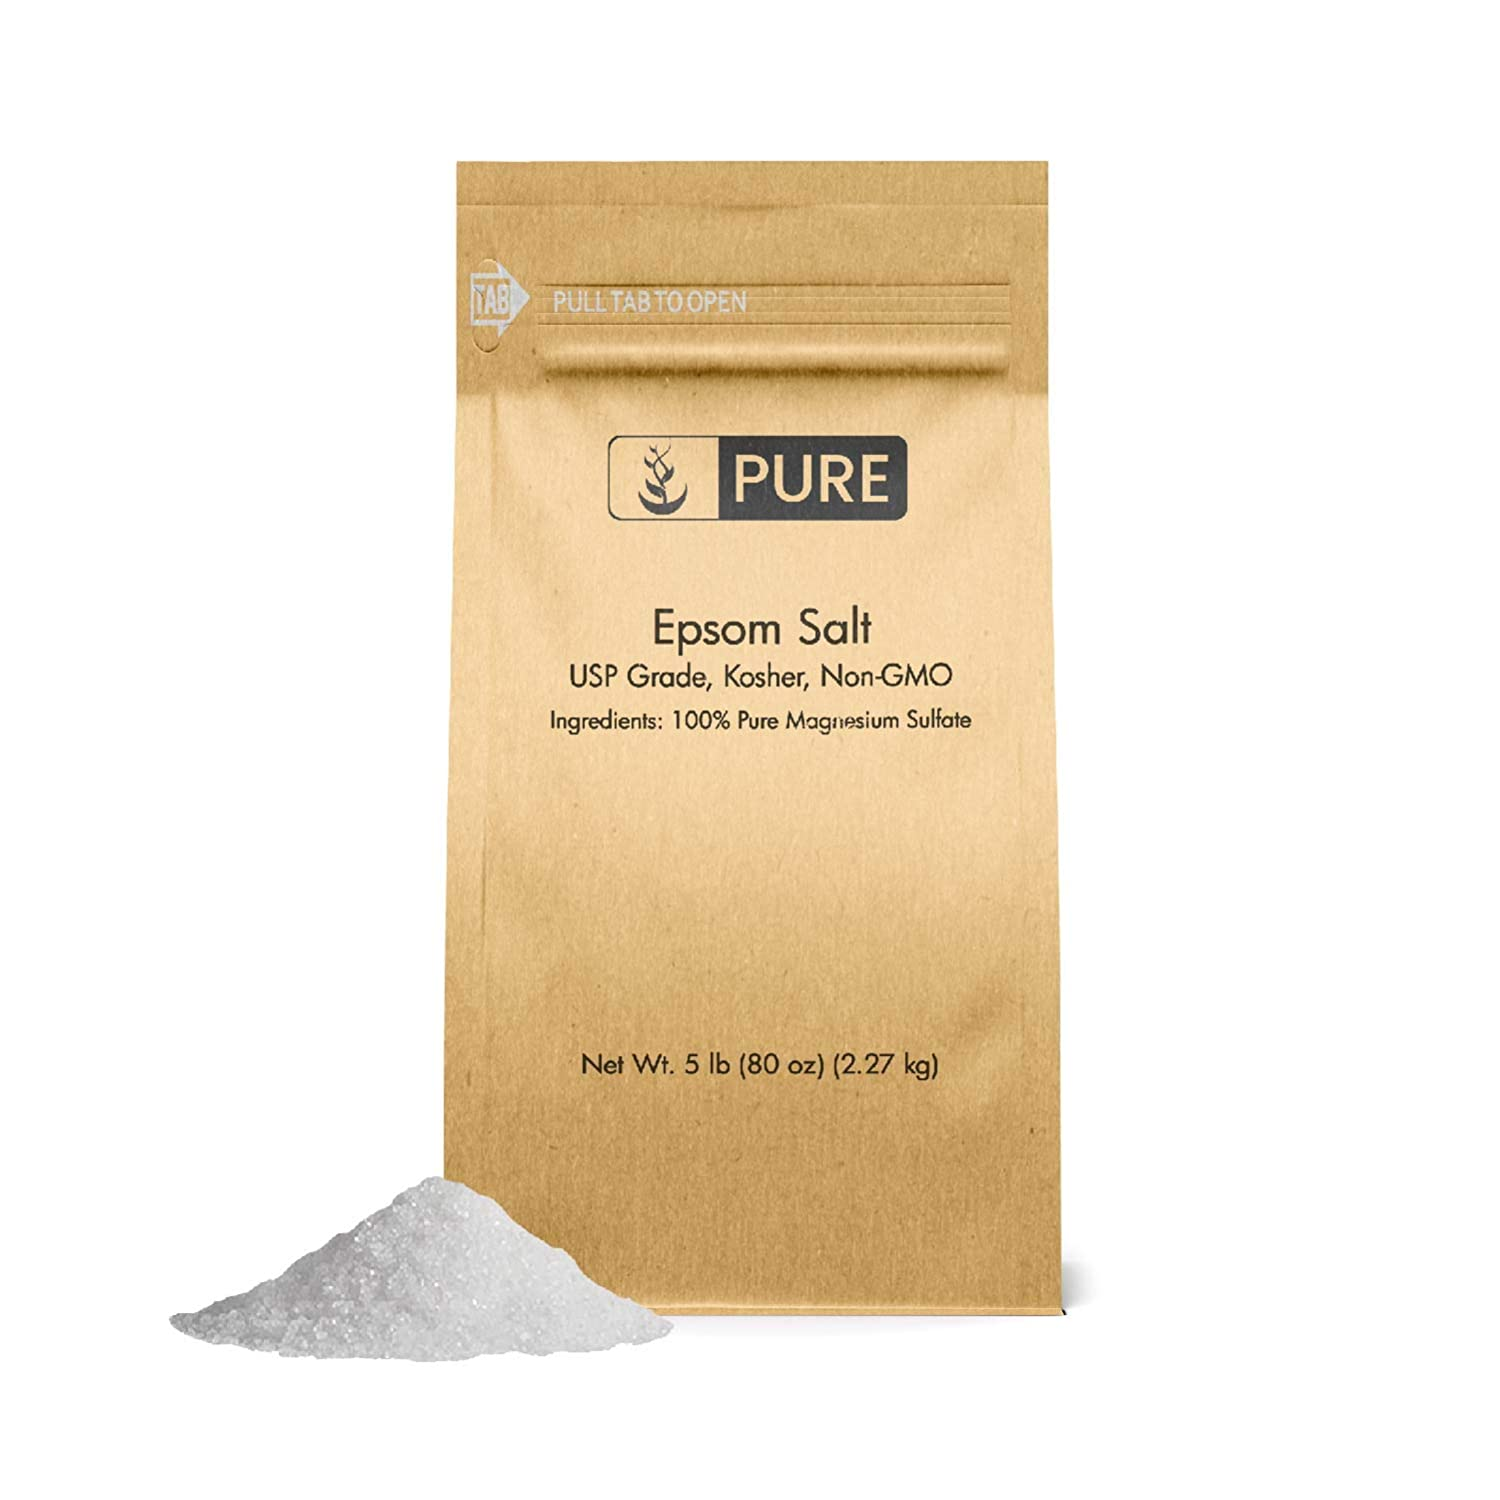 Epsom Salt (5 lb.) by Pure Organic Ingredients, Magnesium Sulfate Soaking Solution, All-Natural, Highest Quality & Purity, USP Grade